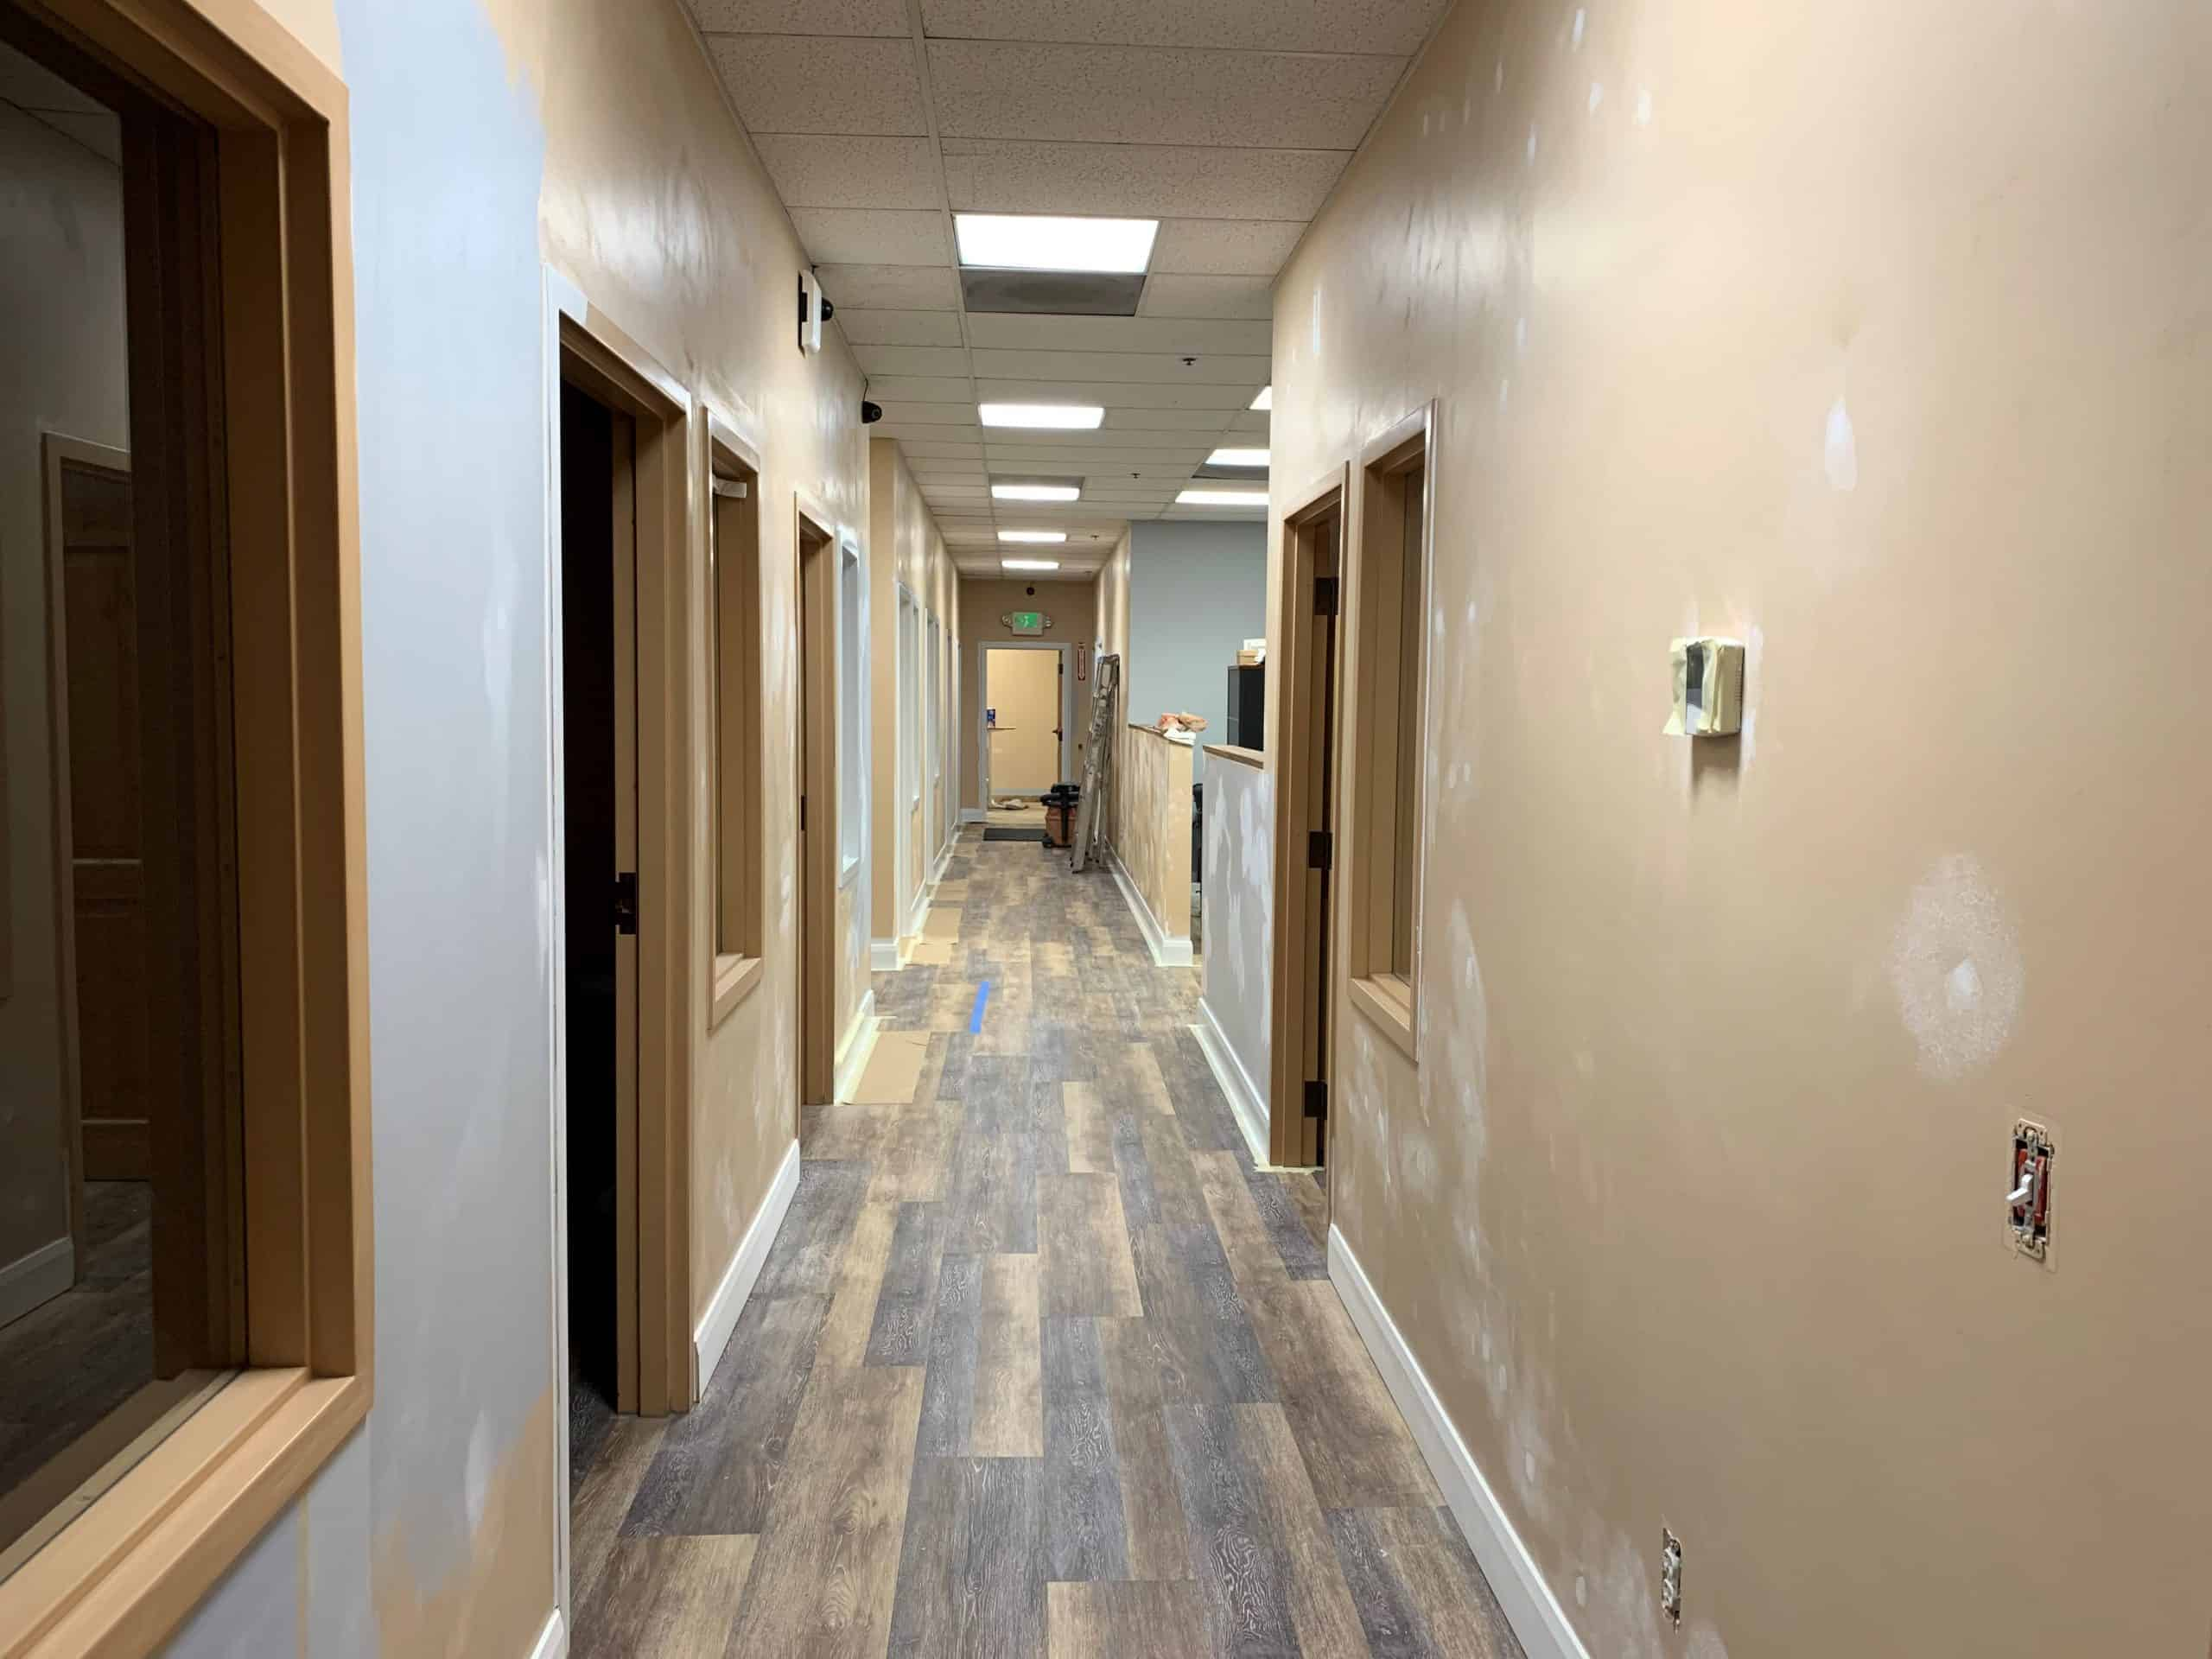 Photo of Skymail's hallway during renovations.